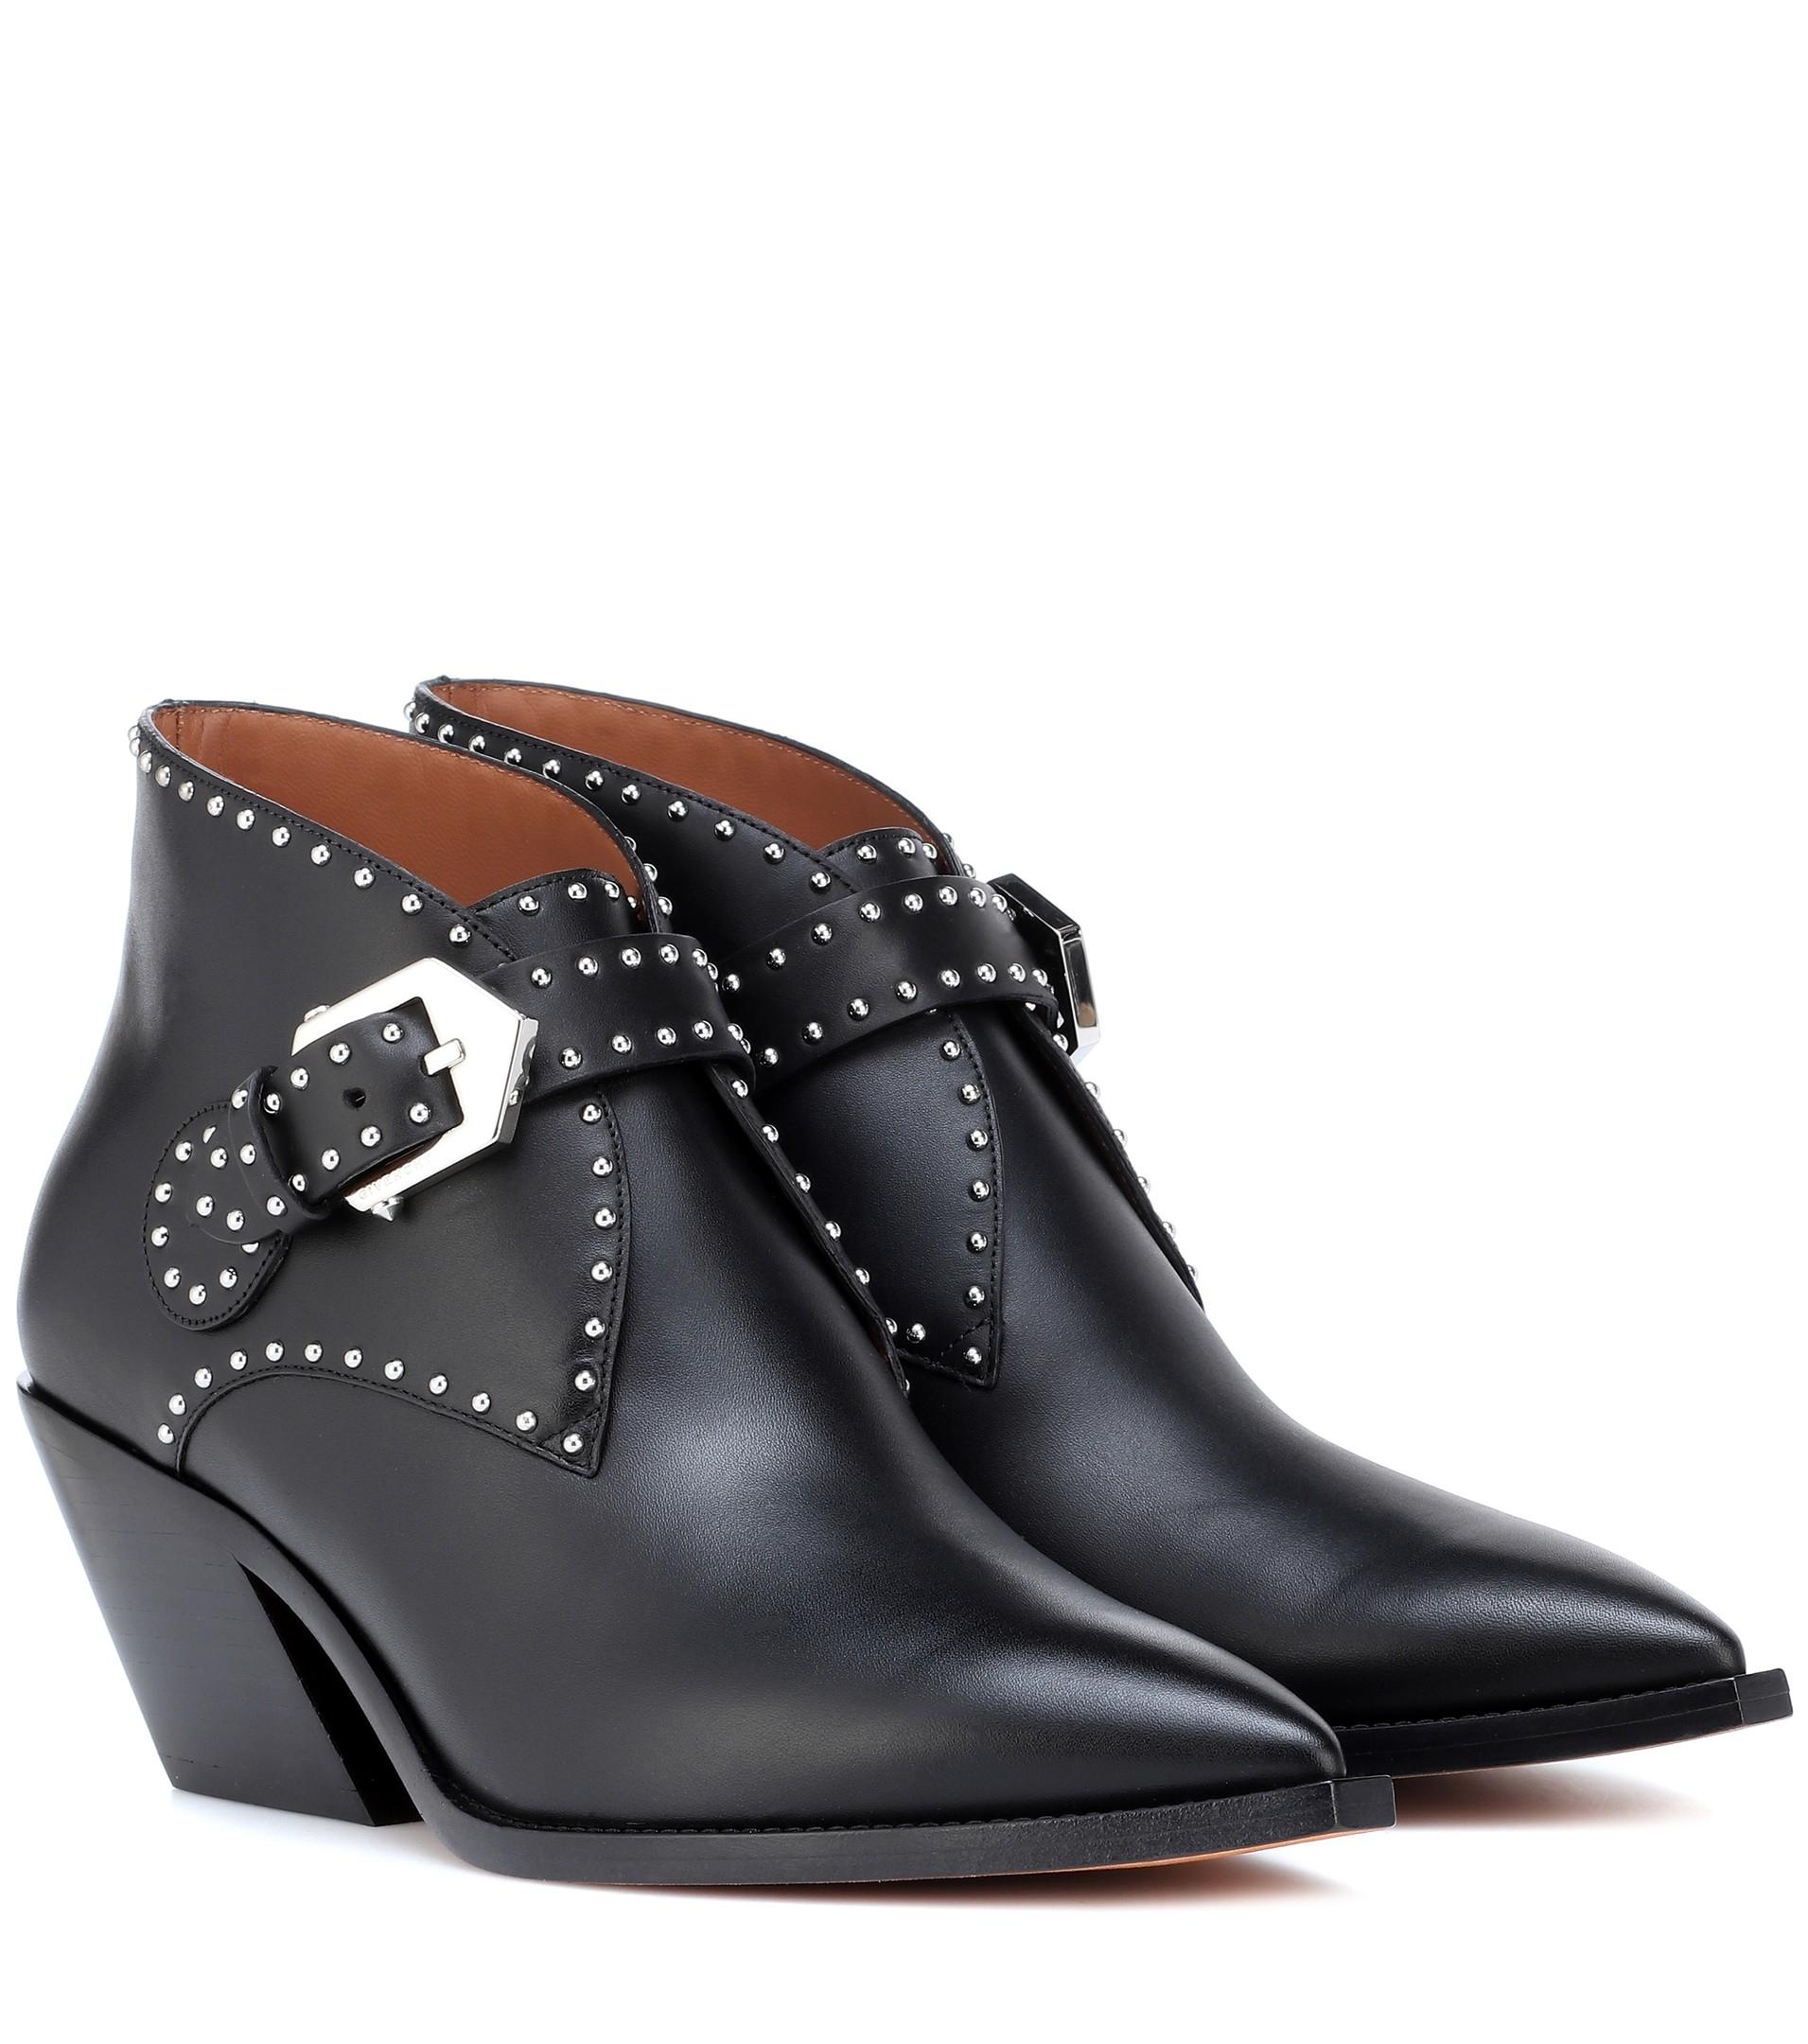 Givenchy Black Elegant Studded Western Boots/Booties Size EU 37 (Approx. US 7) Regular (M, B)